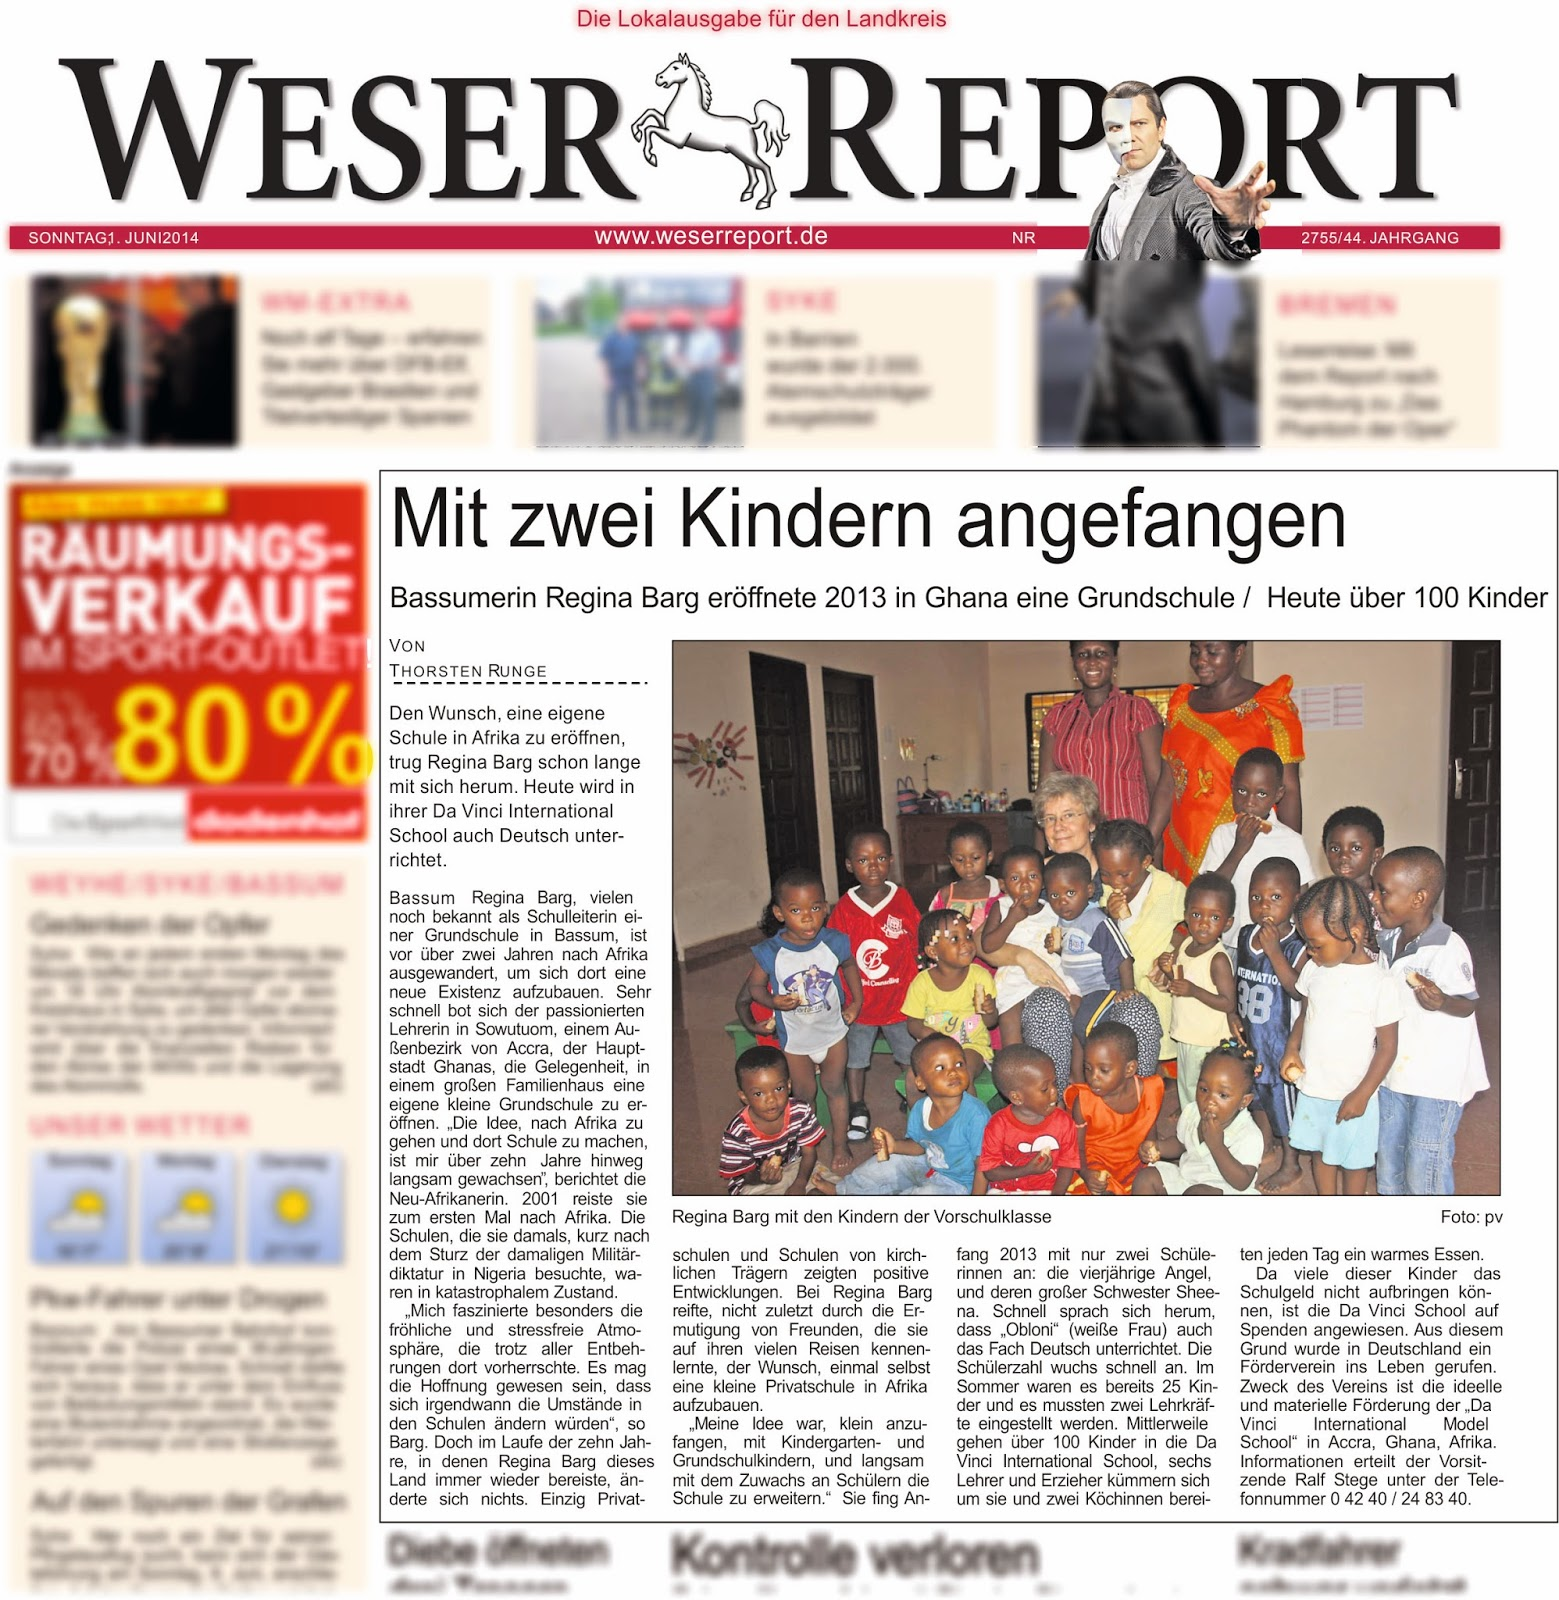 Weser Report am 1.6.2014 (Titelseite!)